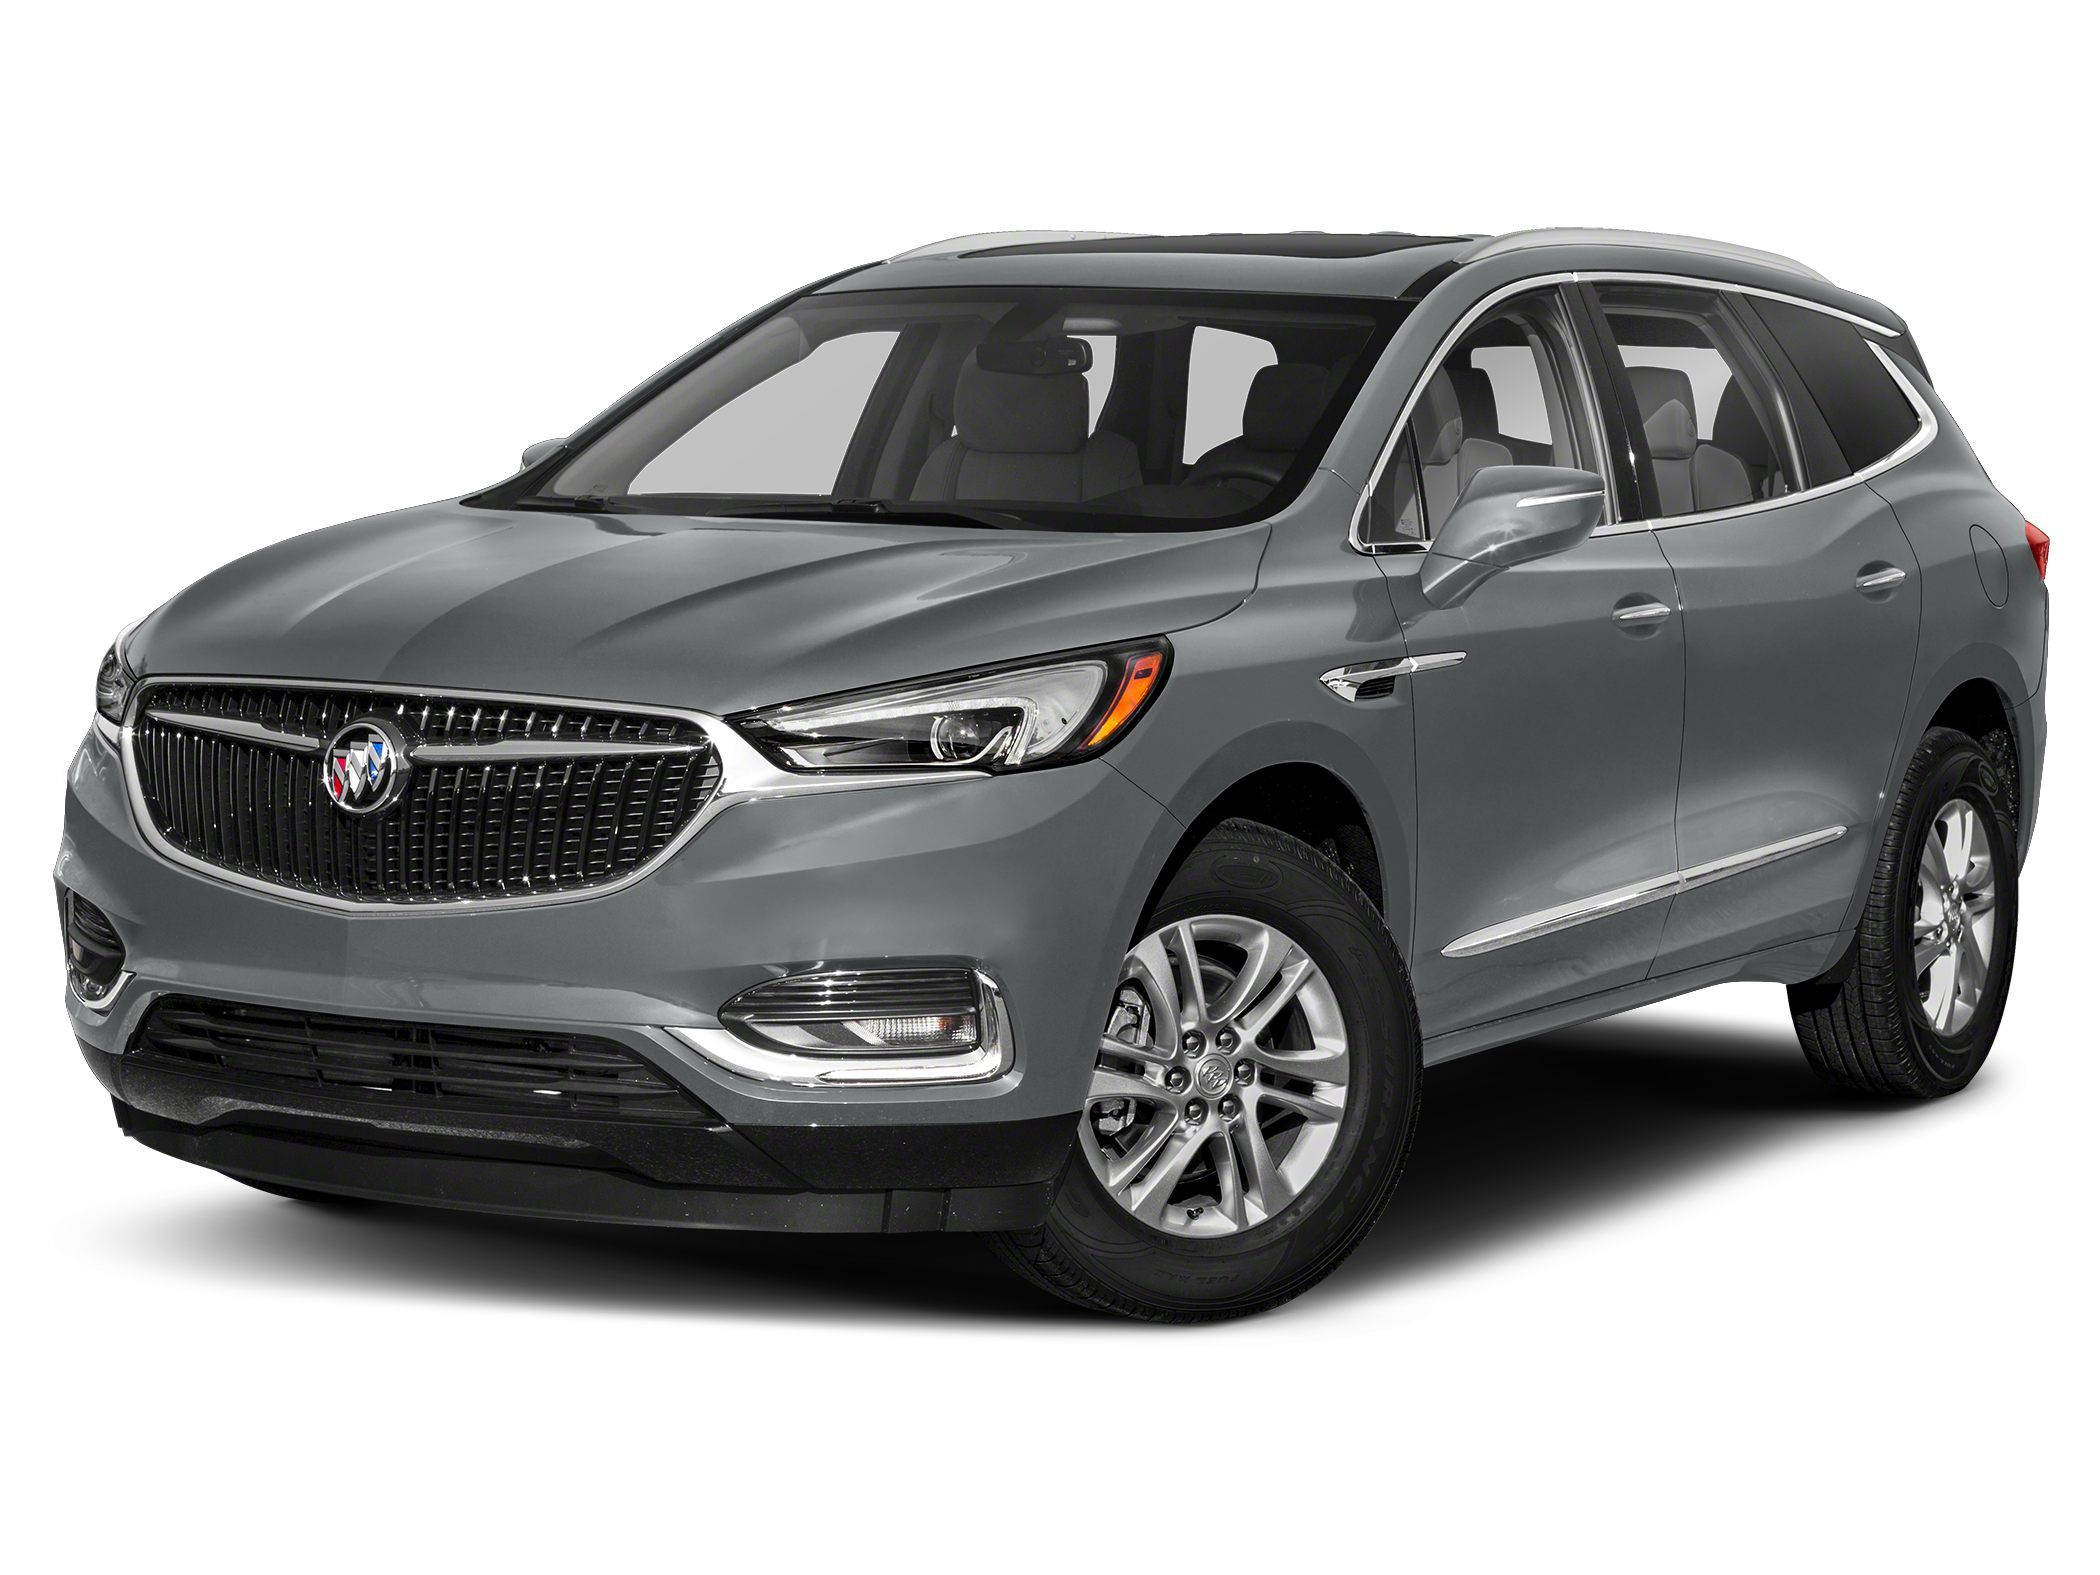 New 2020 Buick Enclave For Sale In Cortland, Ny | Near New 2021 Buick Enclave Length, Leather, Lease Price